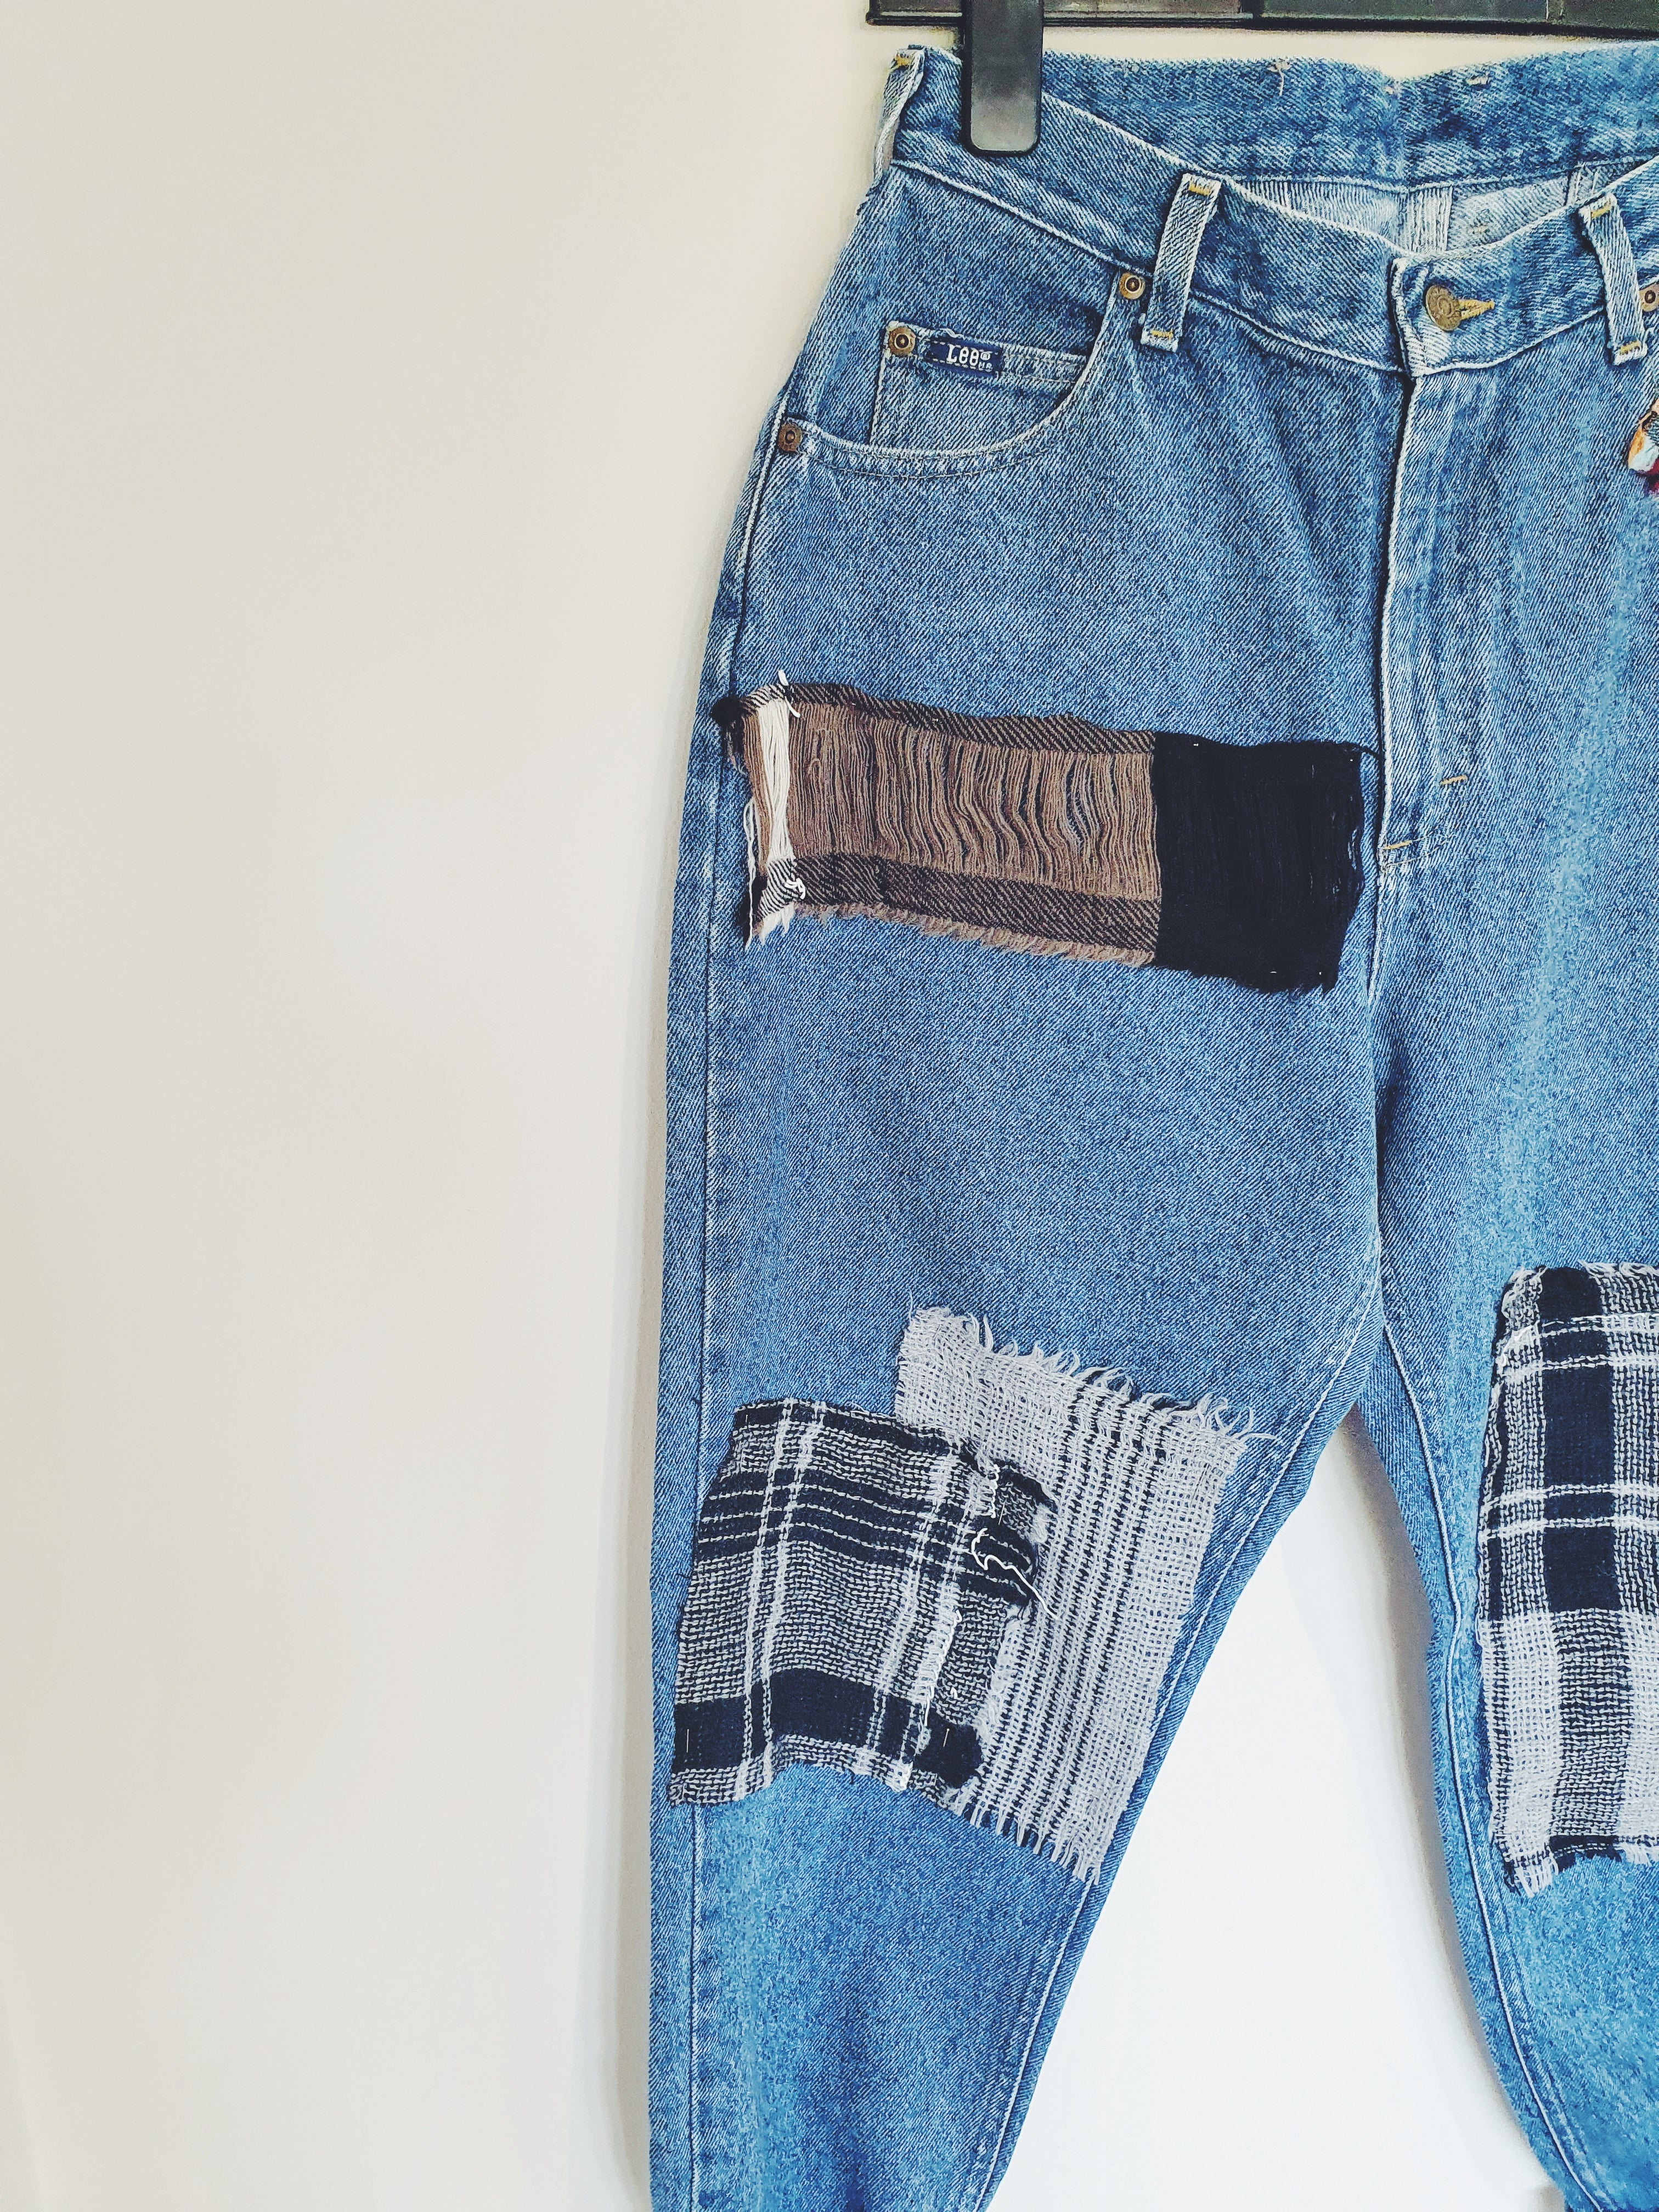 ALone Design Club Weekend Workshop - Upcycle Your Own Jeans with Fabric for Freedom, 25/04 @ 2pm GMT